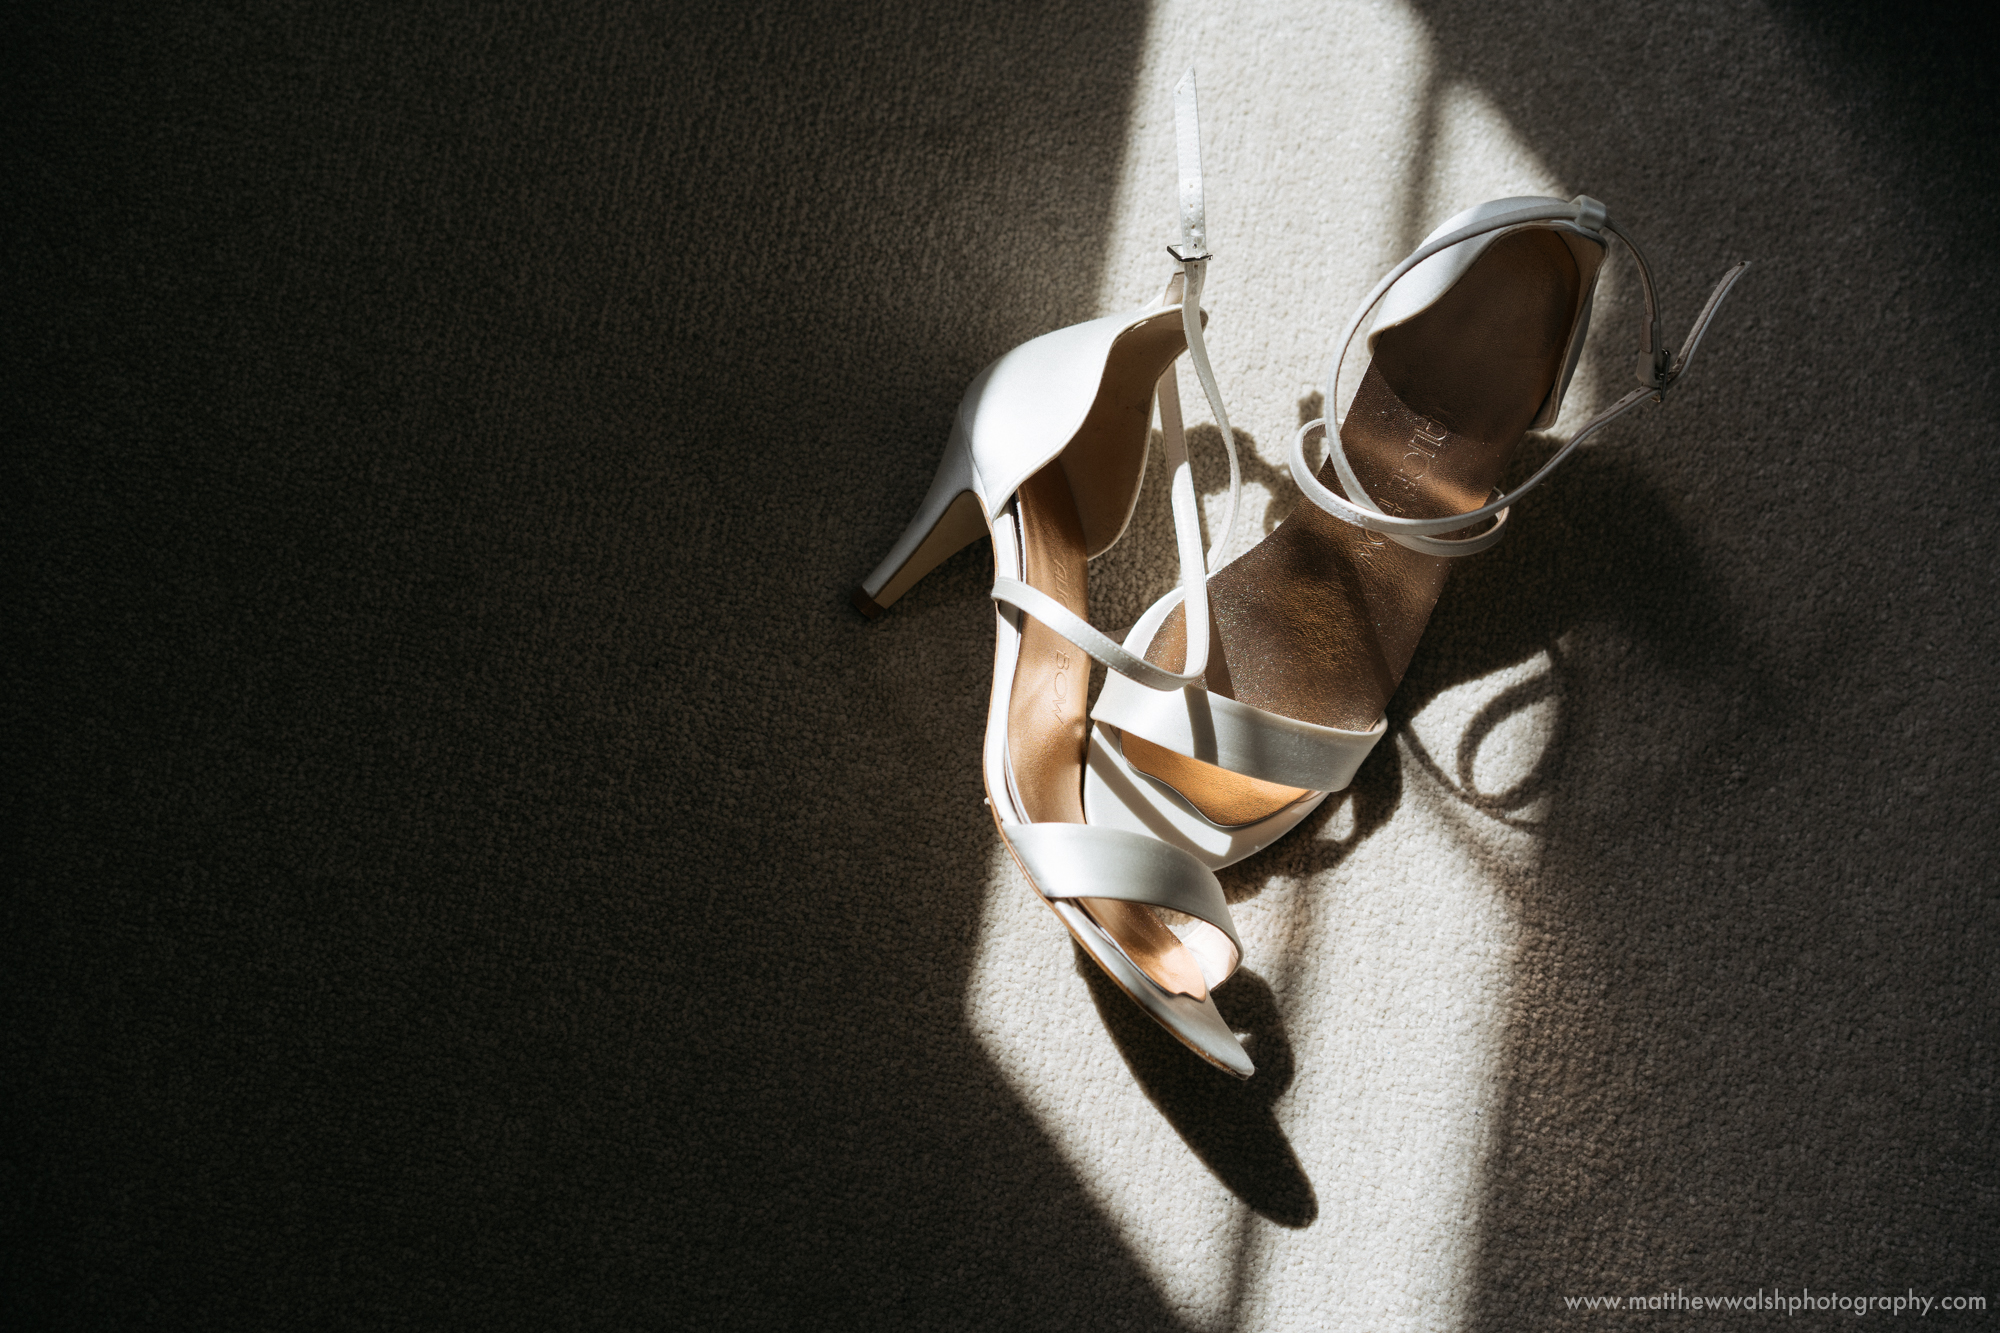 The brides shoes sitting in a pocket of natural sunlight